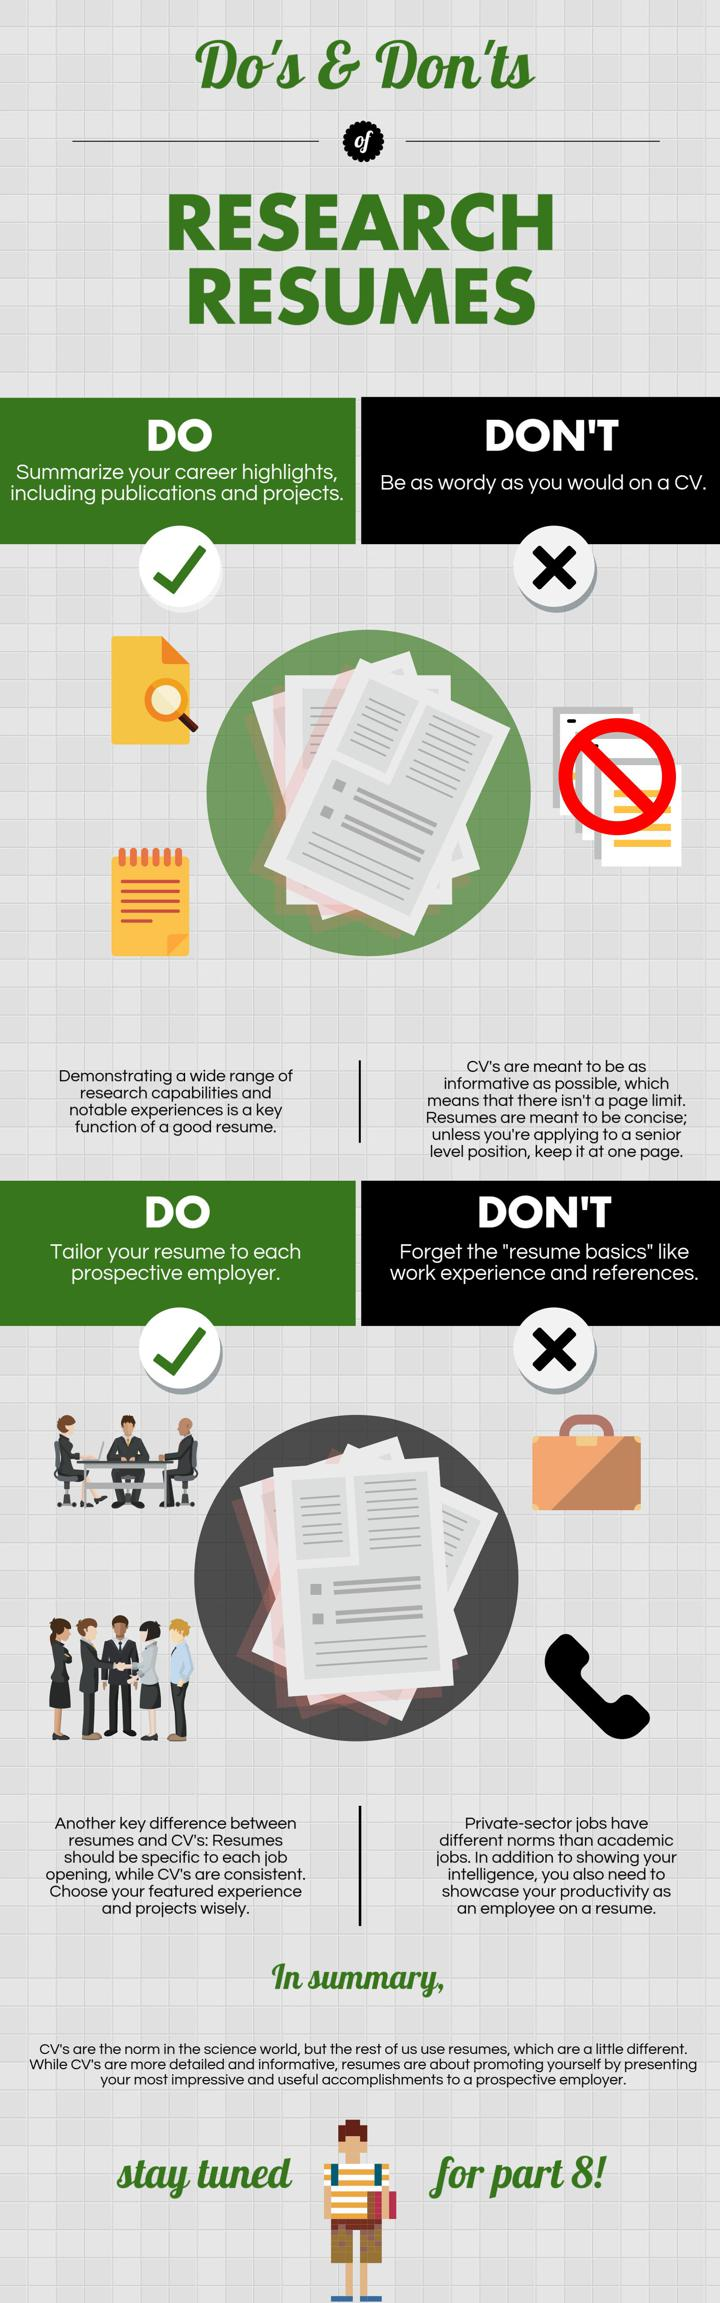 Resume do's and dont's